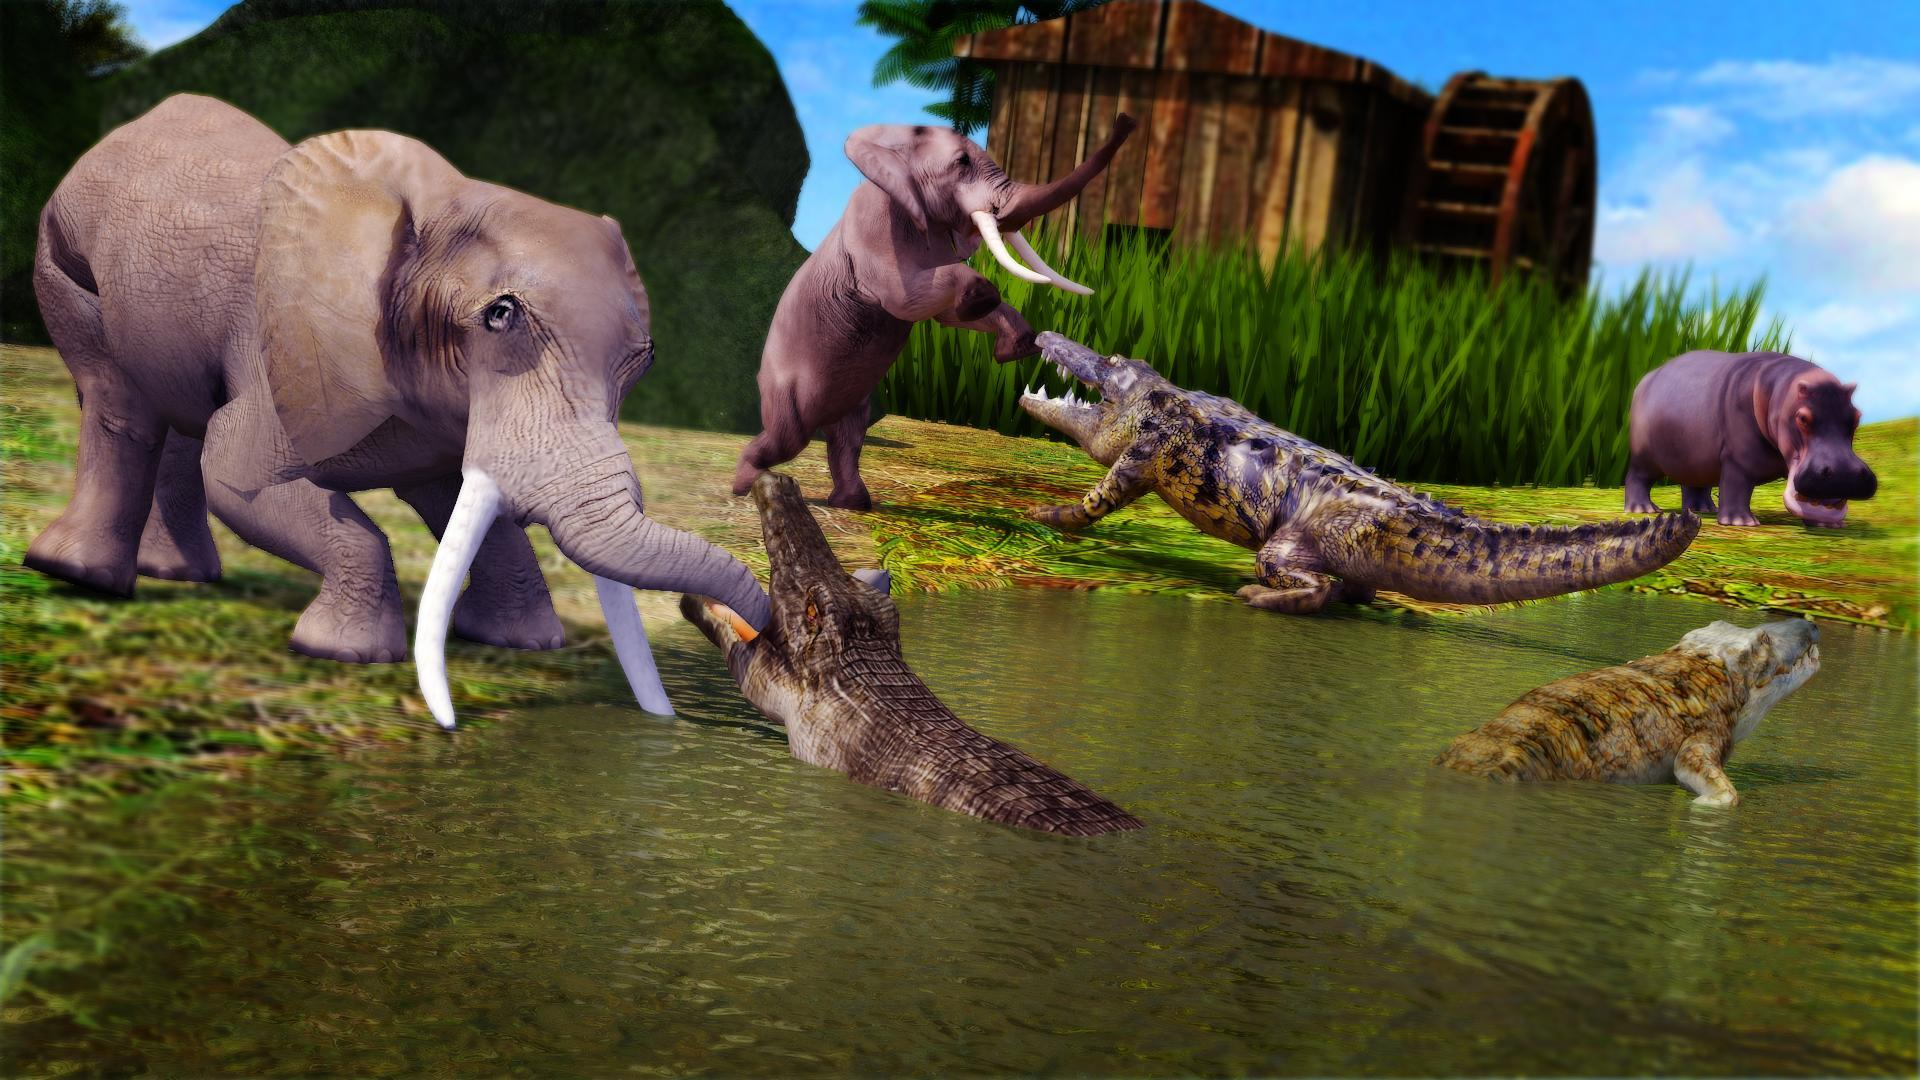 Animal Attack Simulator -Wild Hunting Games 1.0.37 Screenshot 14